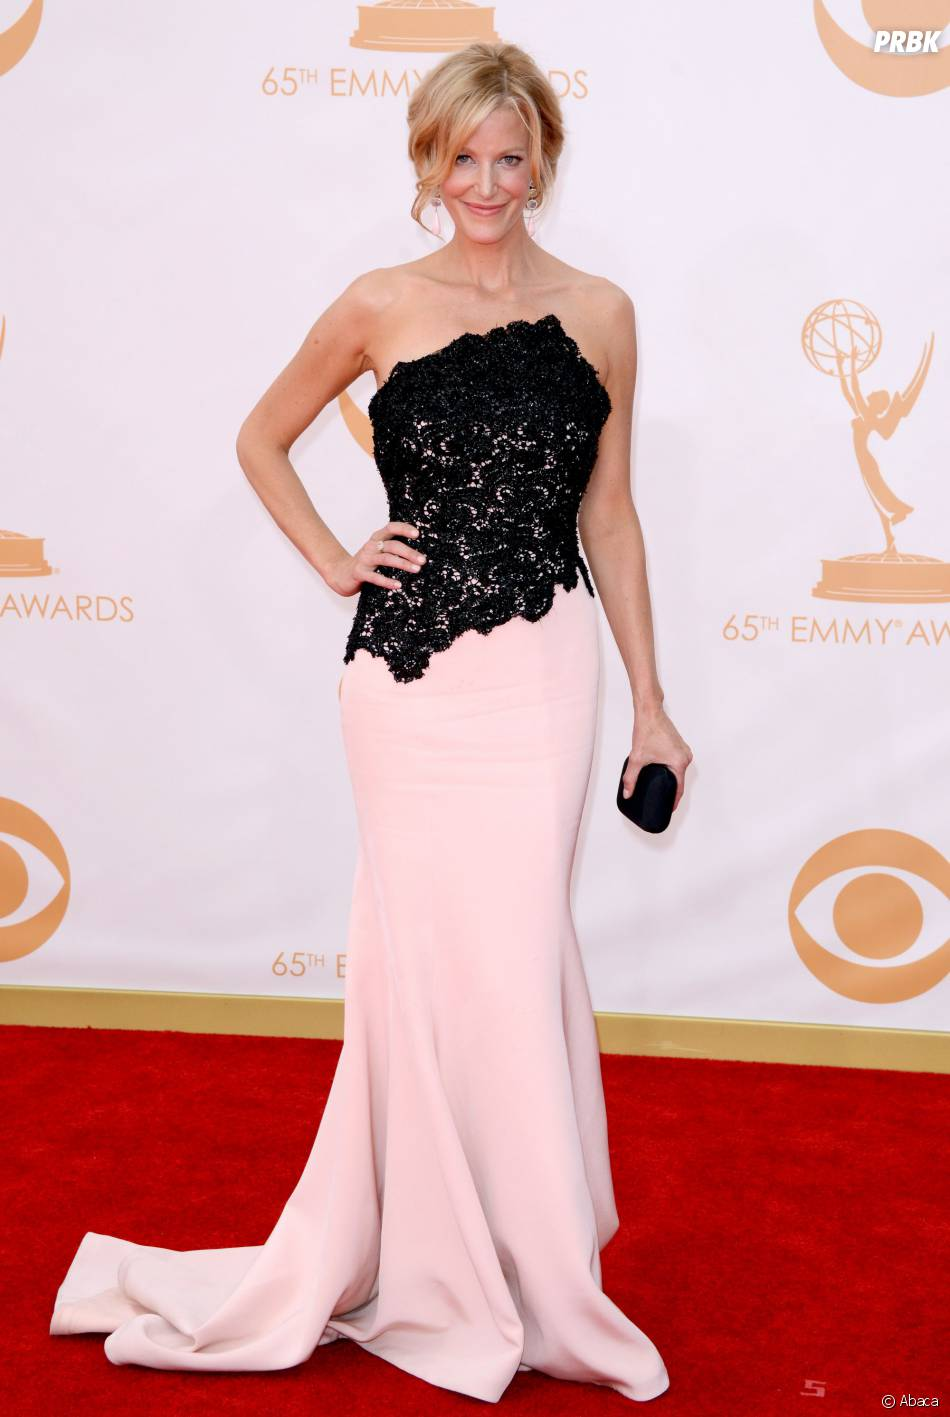 Anna Gunn aux Emmy Awards 2013 le 22 septembre 2013 à Los Angeles